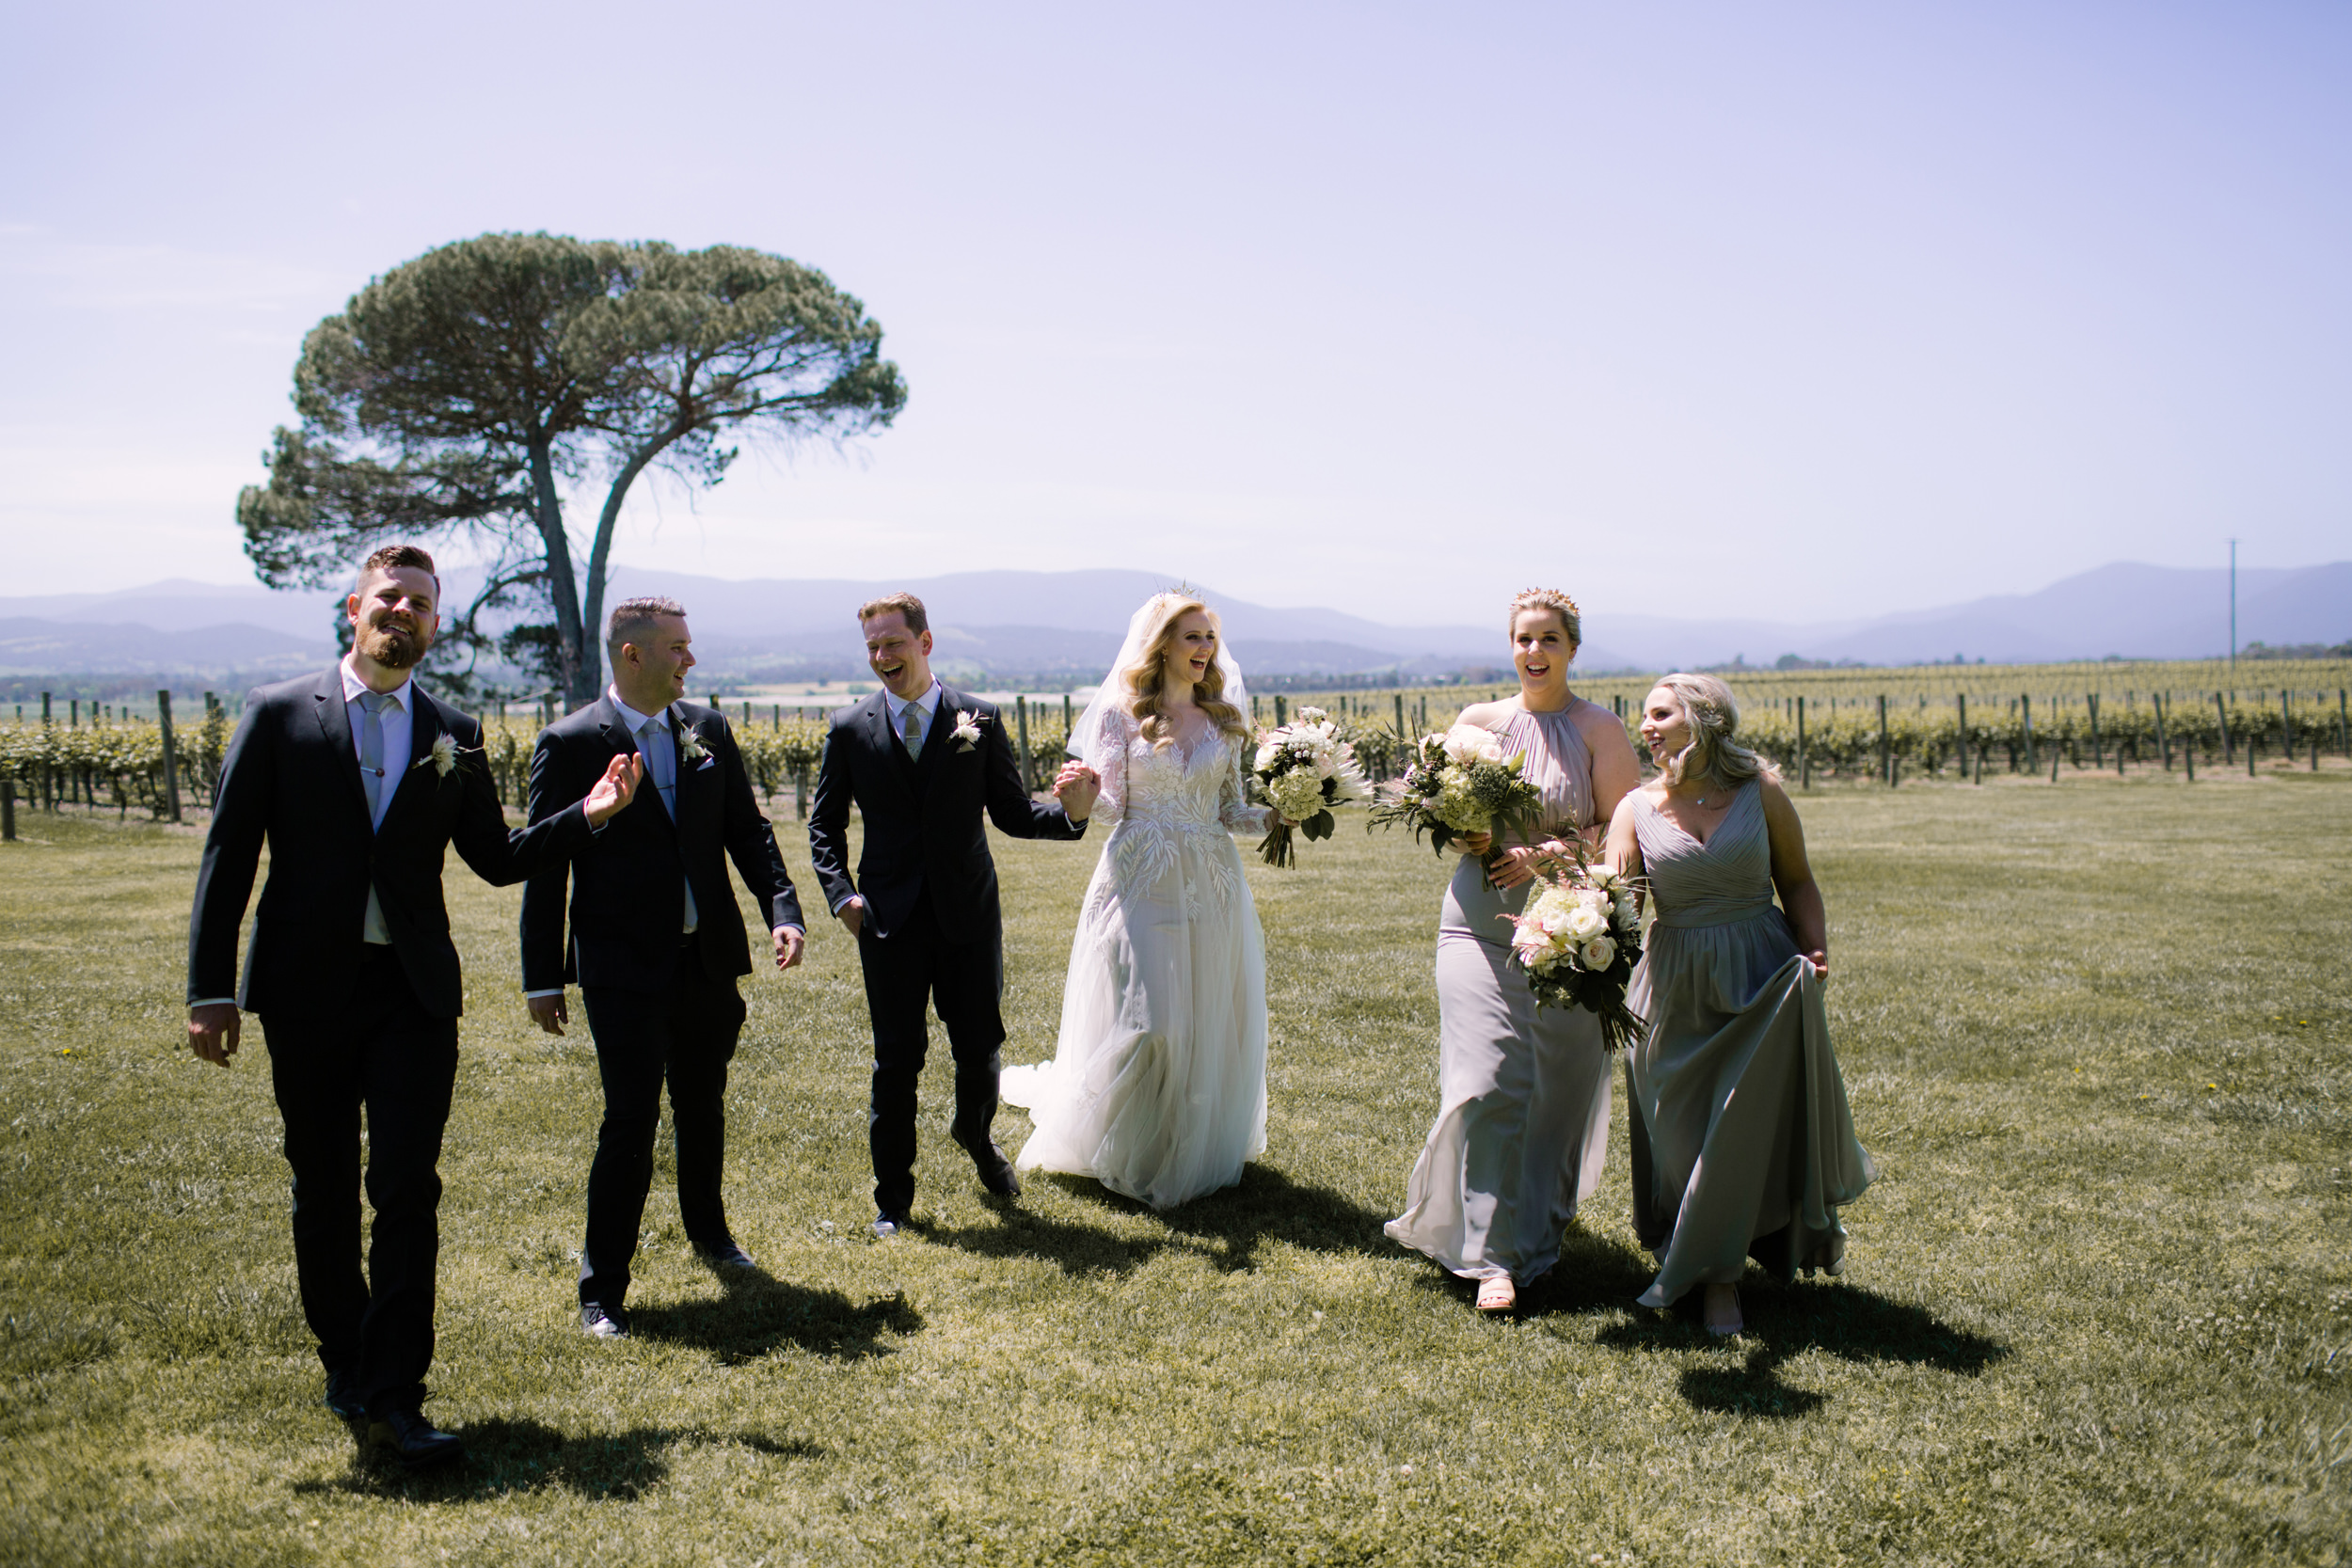 I-Got-You-Babe-&.Co.-Stones-of-the-Yarra-Valley-Wedding-Beverly-Ross0110.JPG